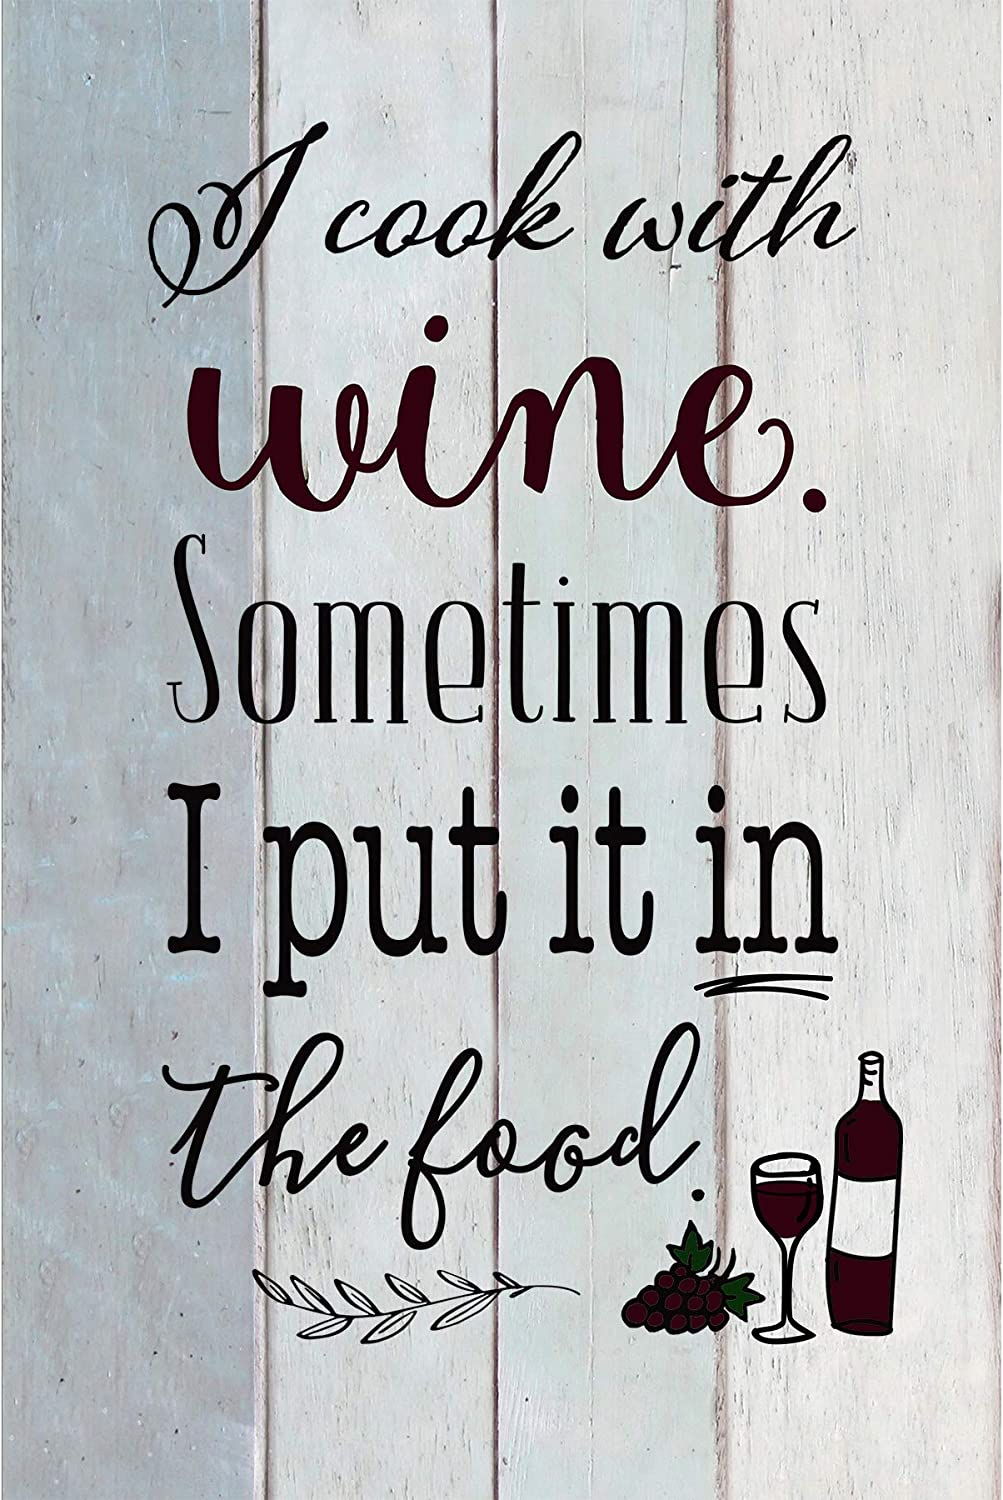 I Cook with Wine Wood Plaque by Bella & Beatrice | Inspiring Quotes 6